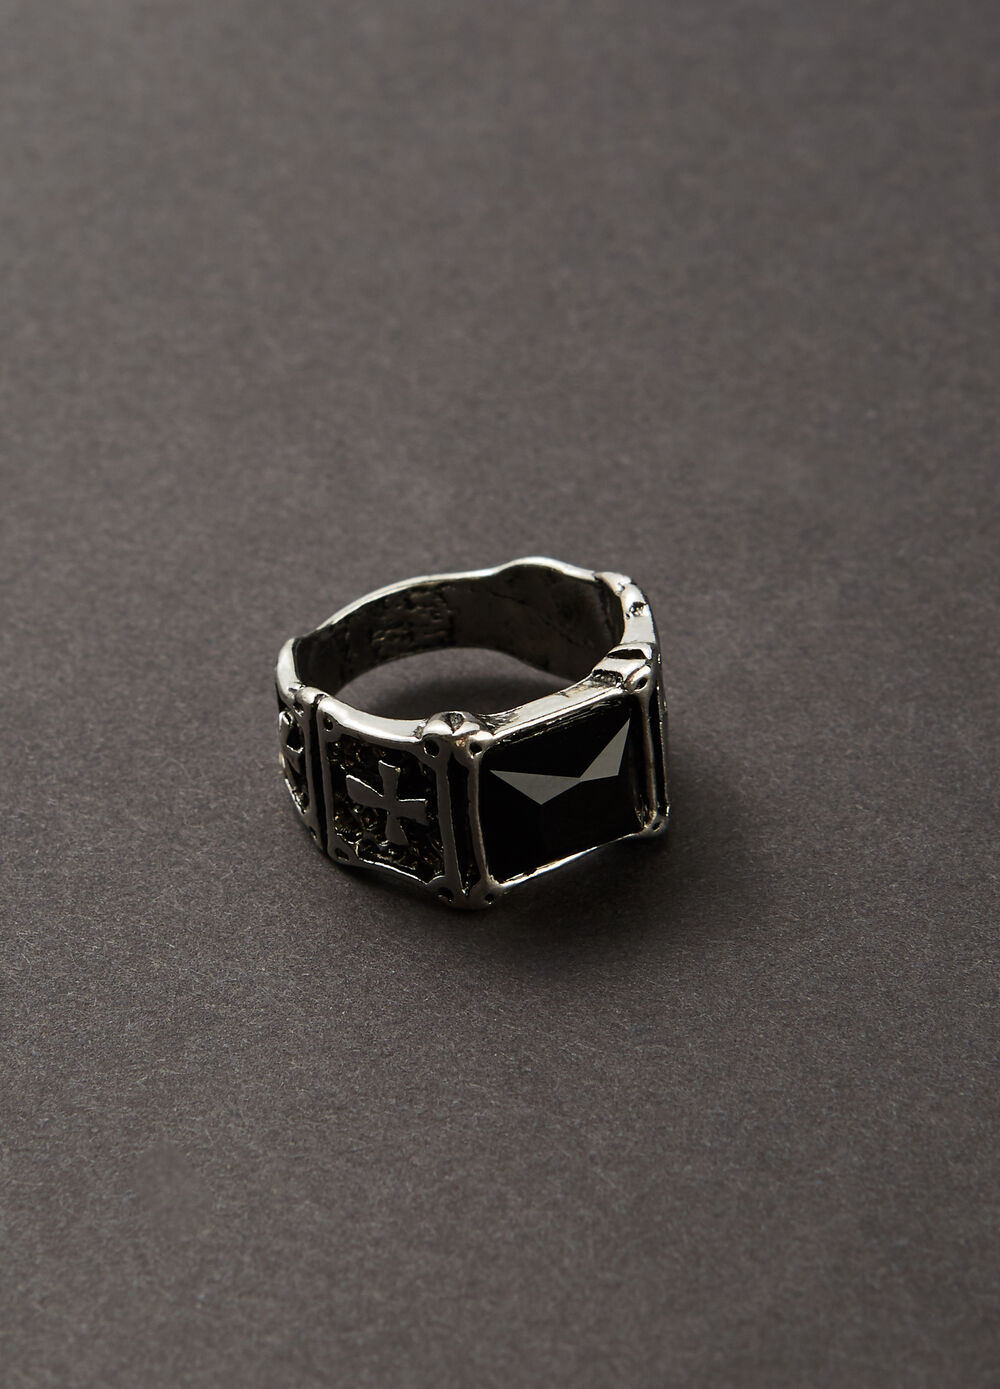 Metal ring with low-relief work and stone